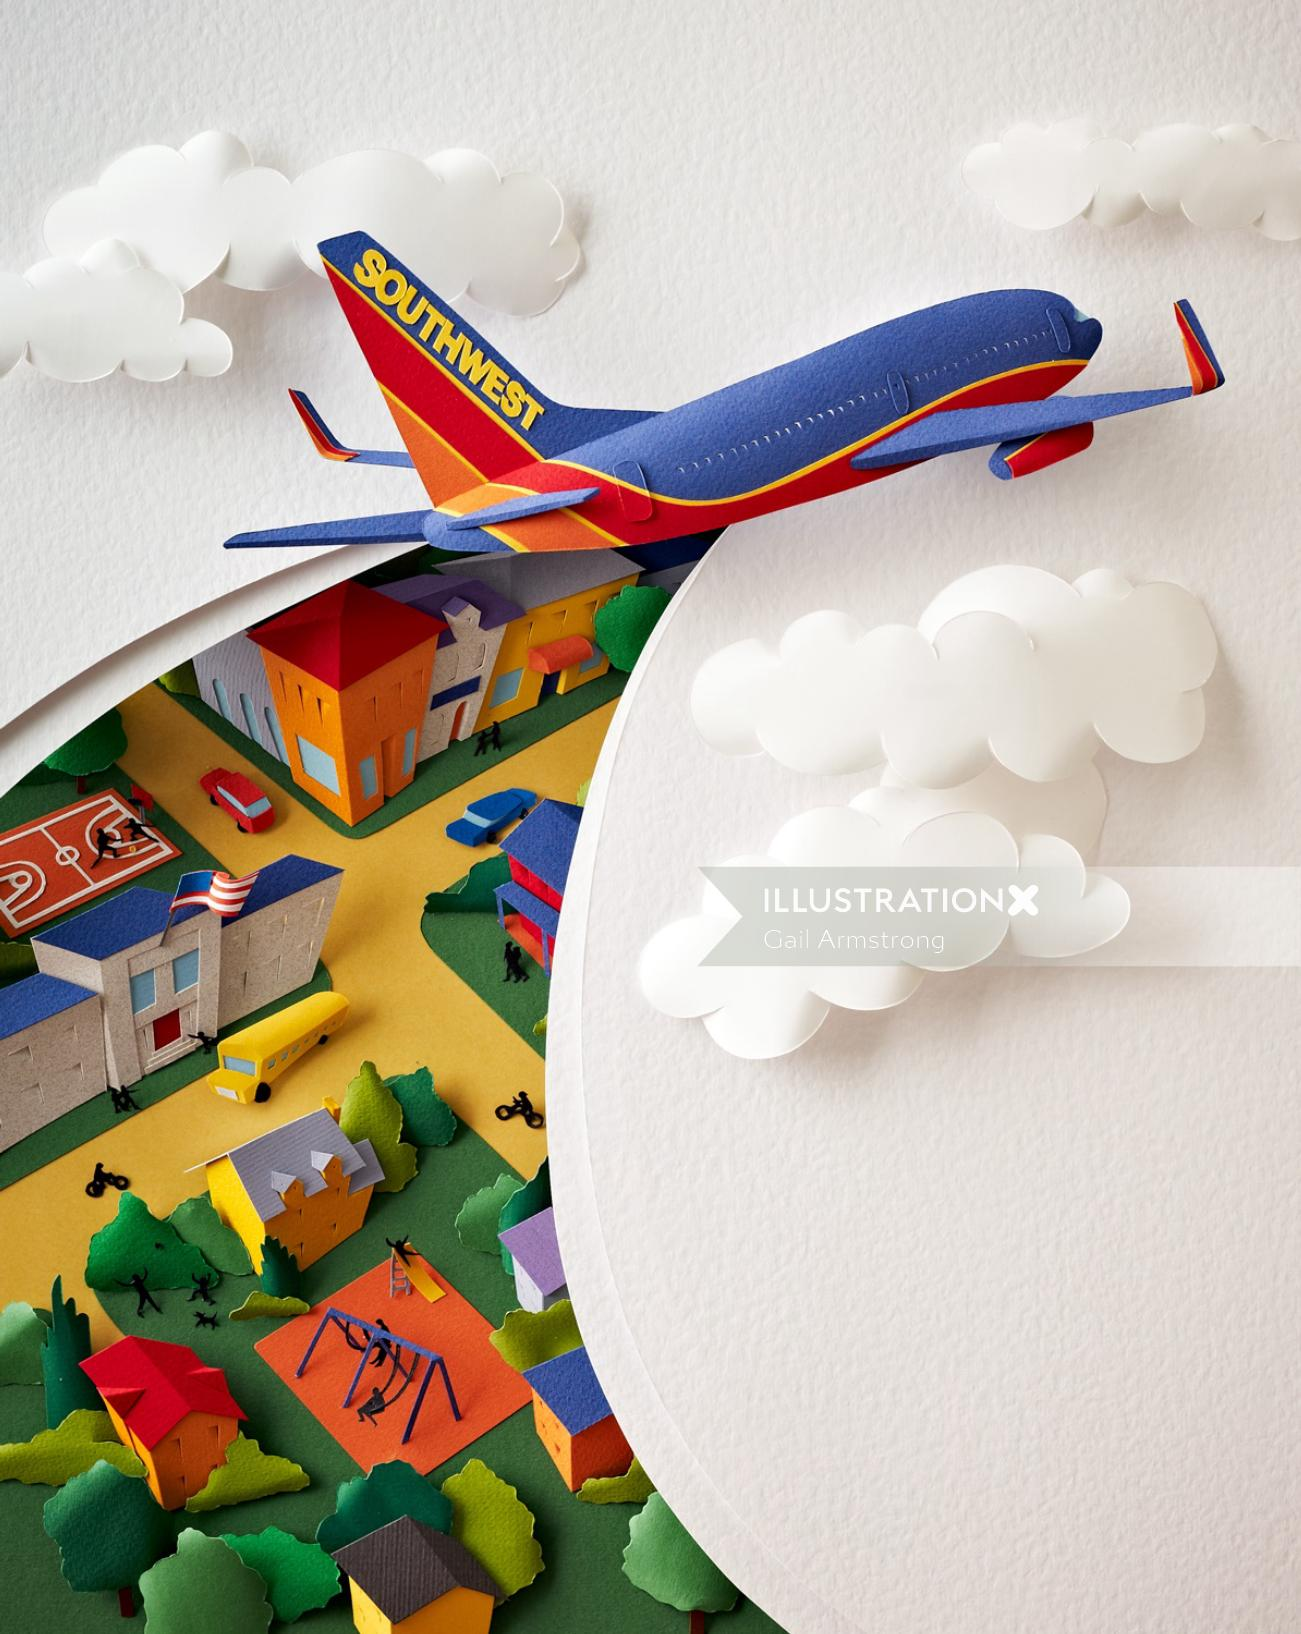 Paper sculpture image of a SouthWest Airlines plane cutting through the sky and clouds